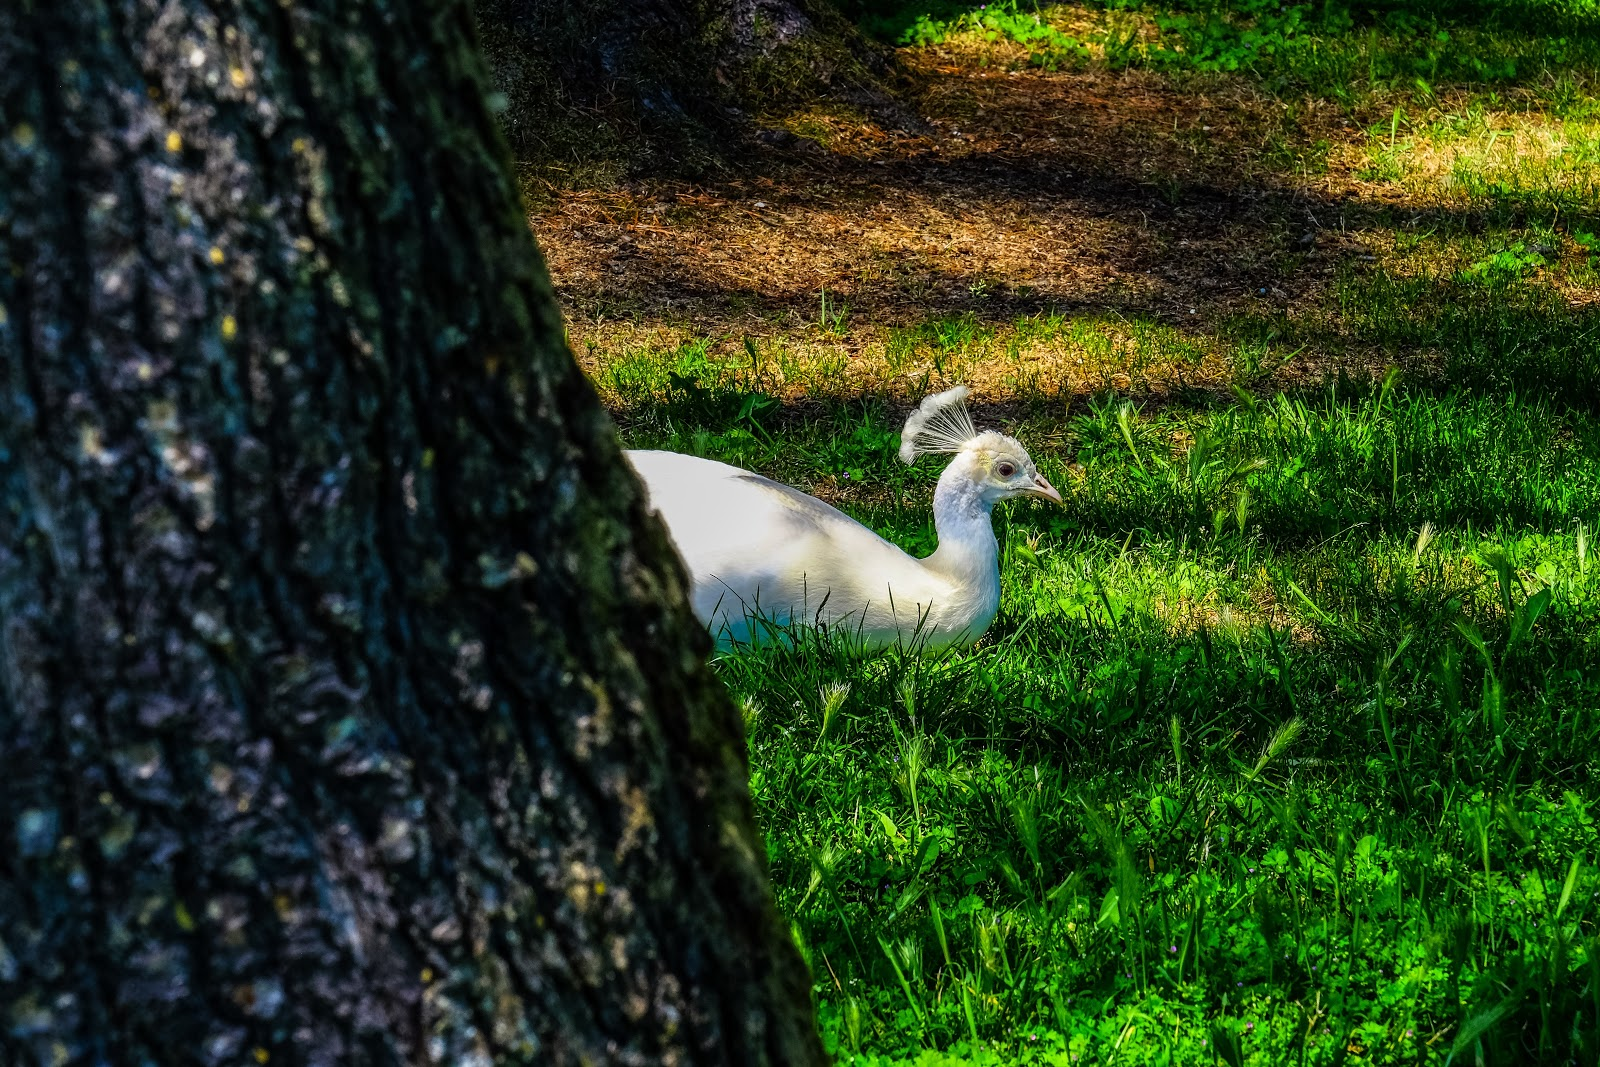 white-peacock-on-grass-pictures